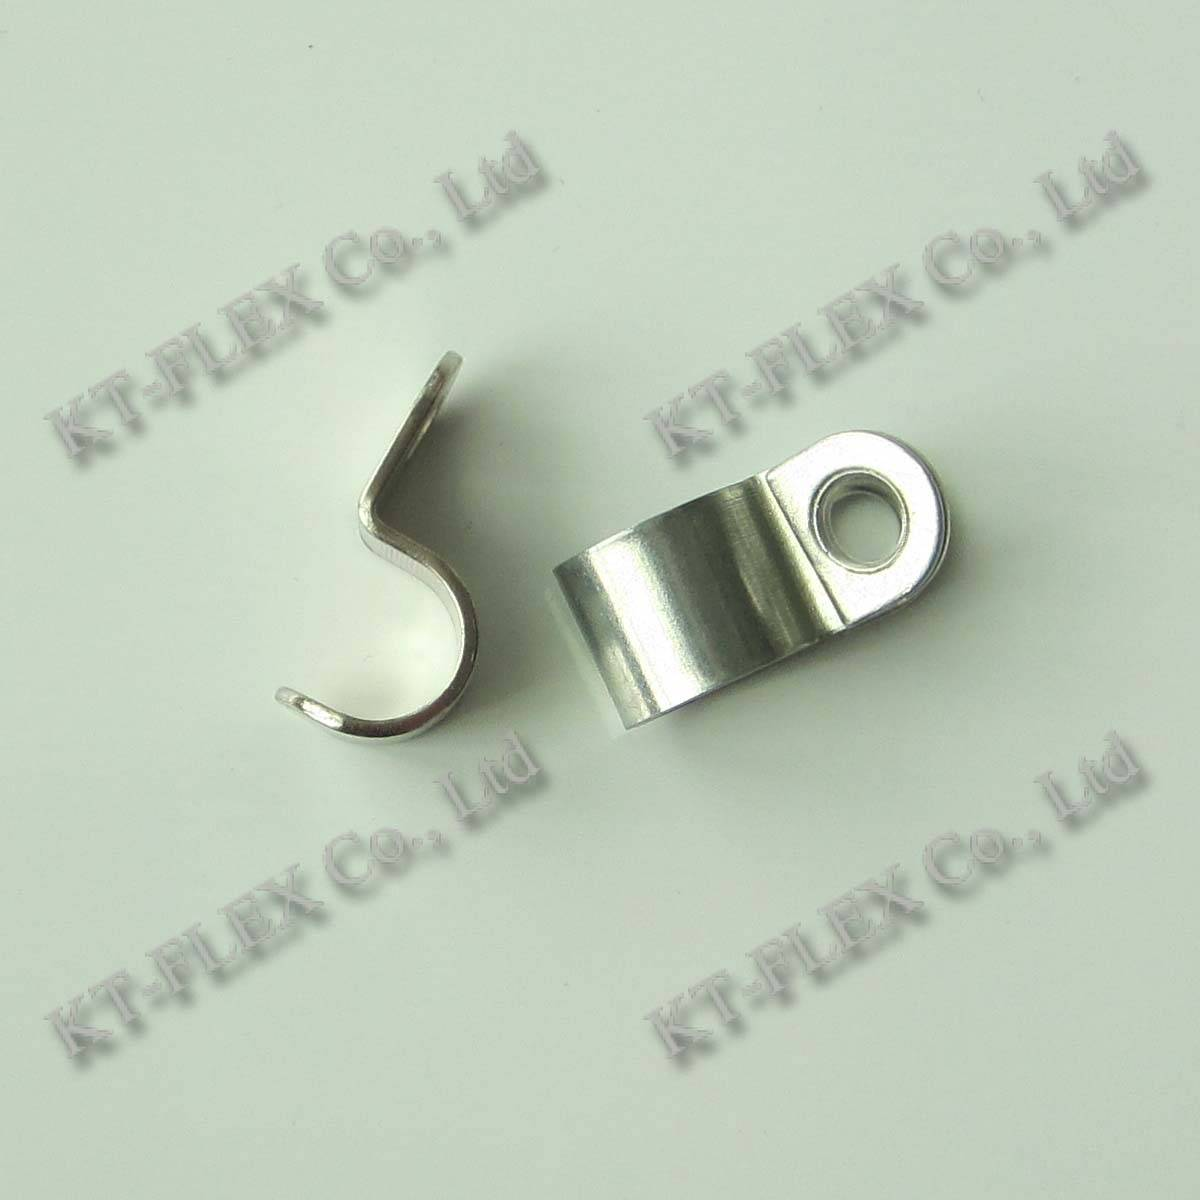 Zinc plated iron 14mm one hole cable clip